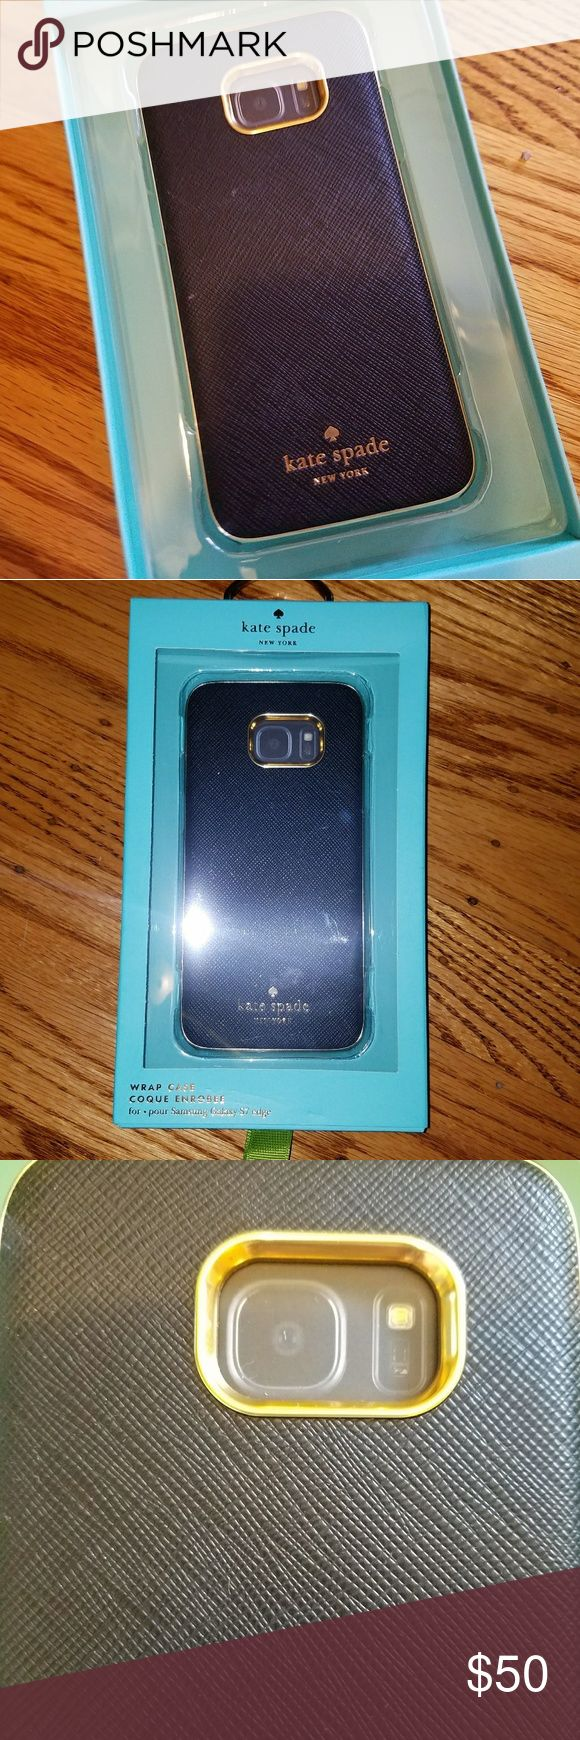 Kate spade samsung galaxy s7 edge case Samsung galaxy s7 edge phone case. Super cute leather look. Gold accents. Only used once. Comes in box brand new. kate spade Accessories